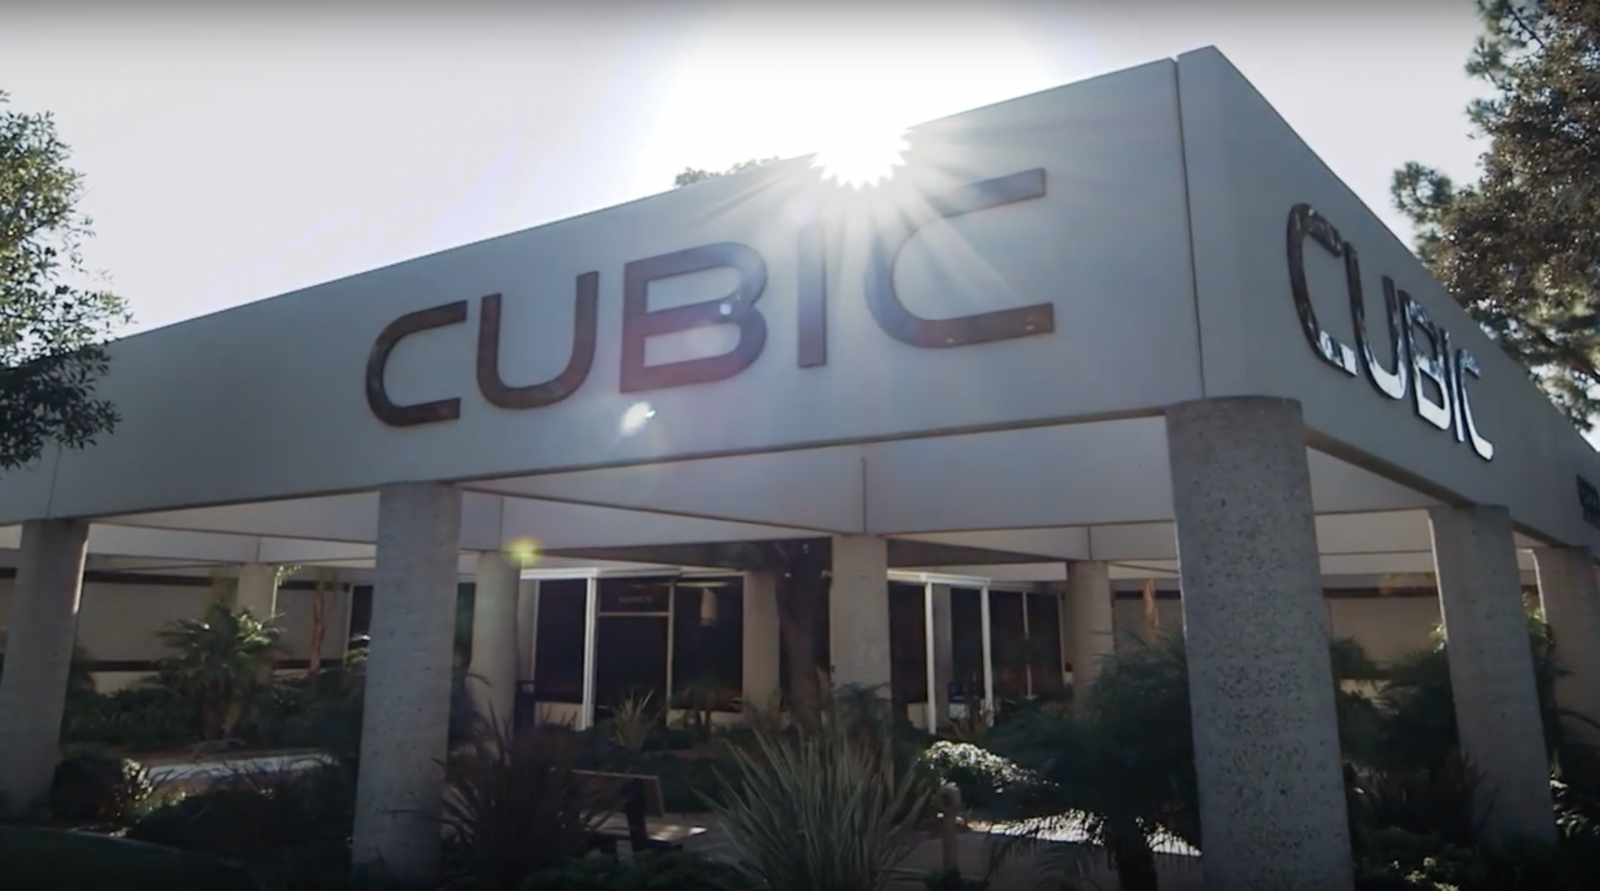 Cubic Headquarters